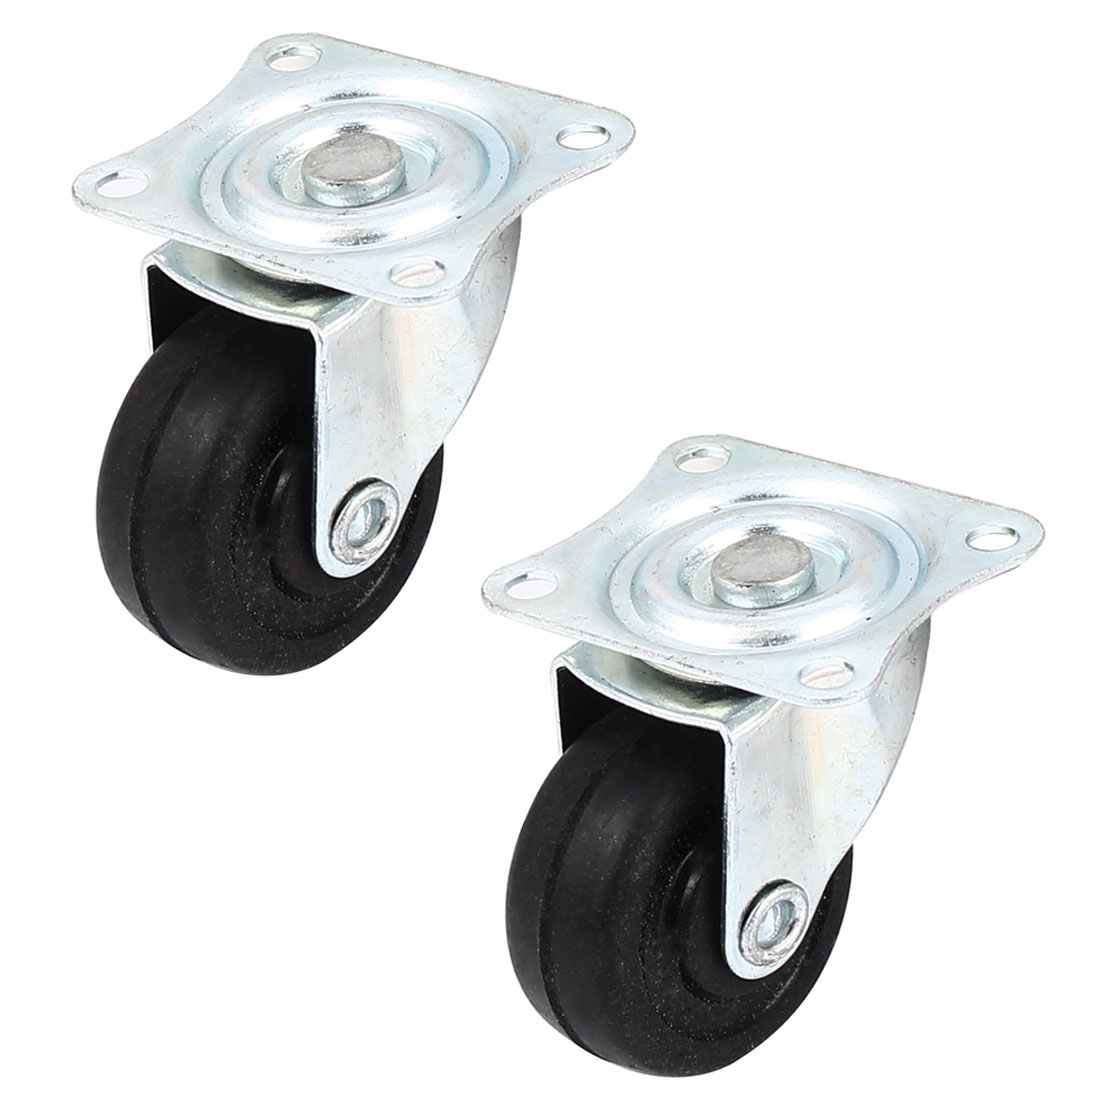 "Furniture Trolley 1.5"" Round Single Wheel Rectangle Top Plate 360 Degree Caster 2 Pcs"